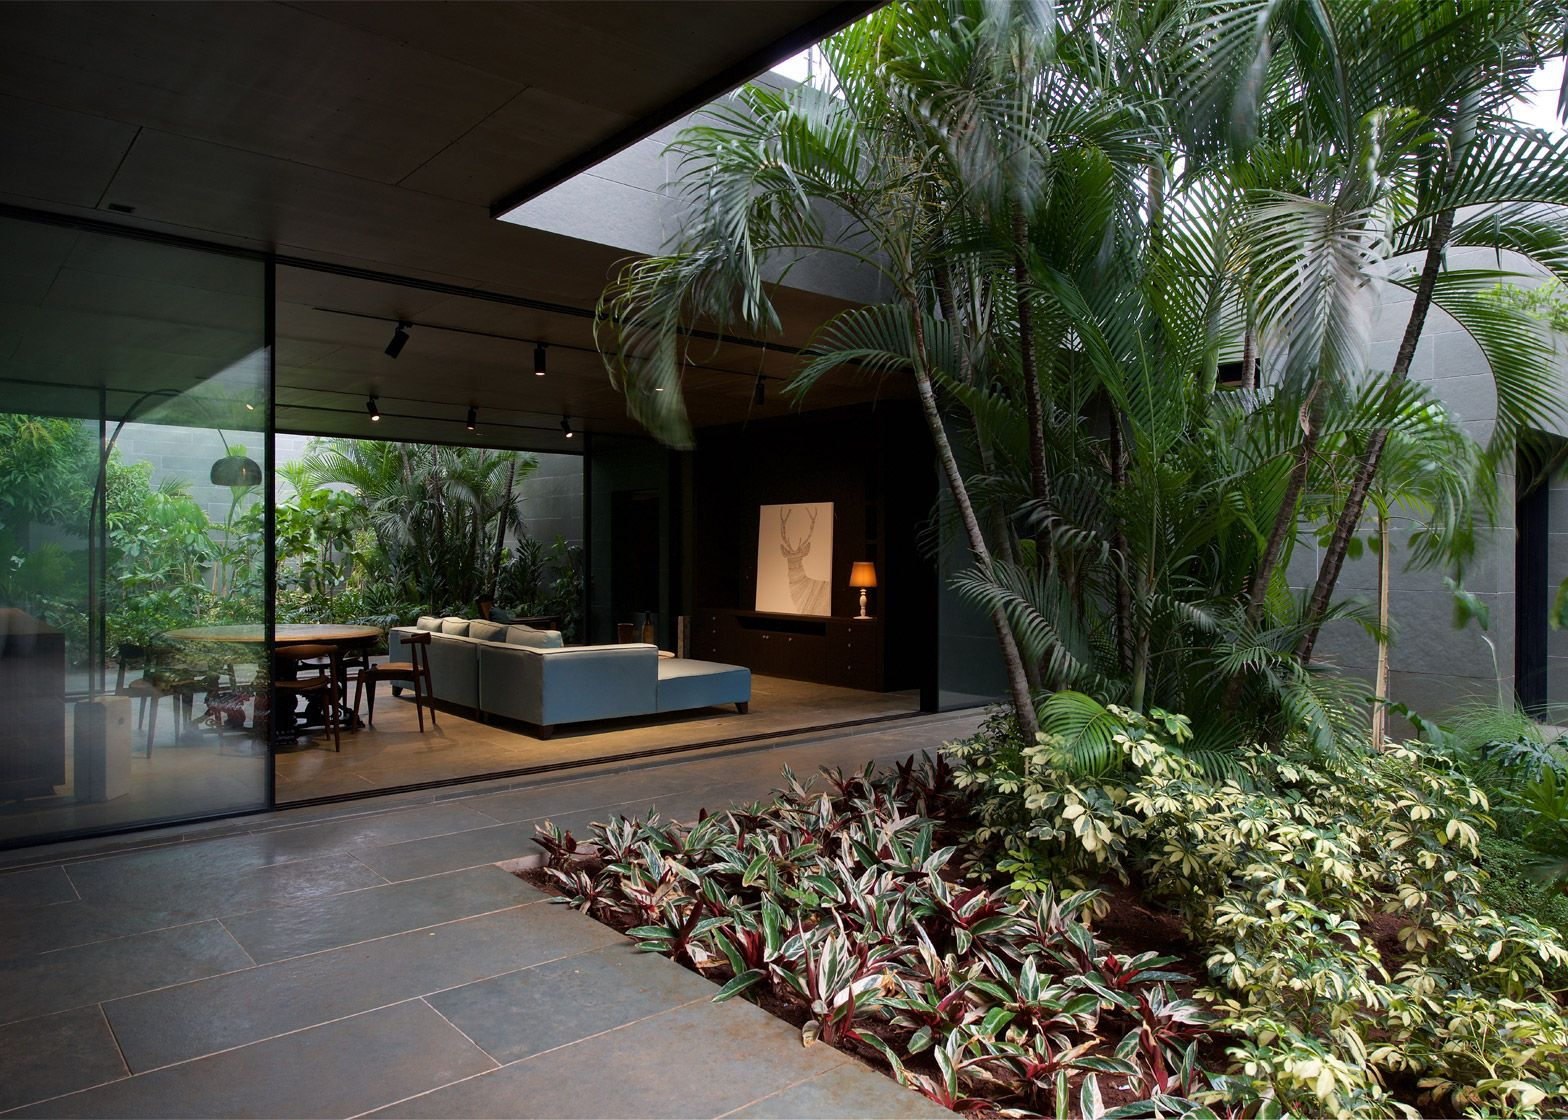 This house in Malavli, India, features walls made from